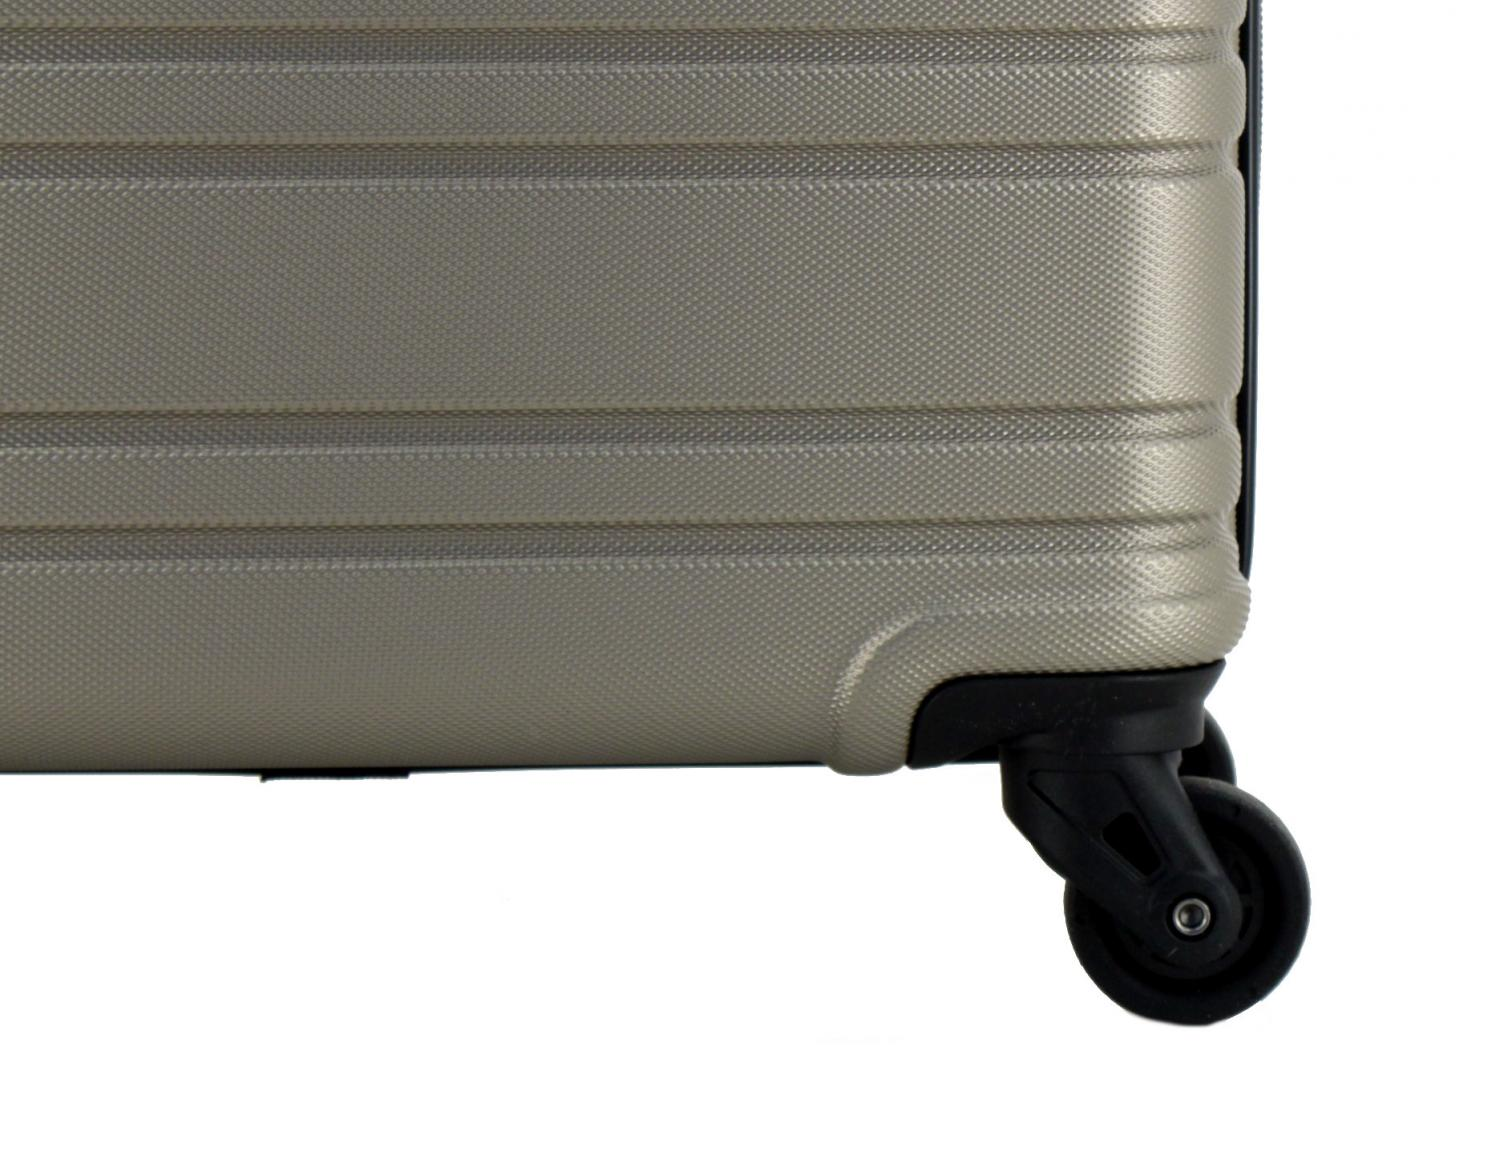 Travelite Boardtrolley Roadtrip S 55cm dunkelblau Handgepäck